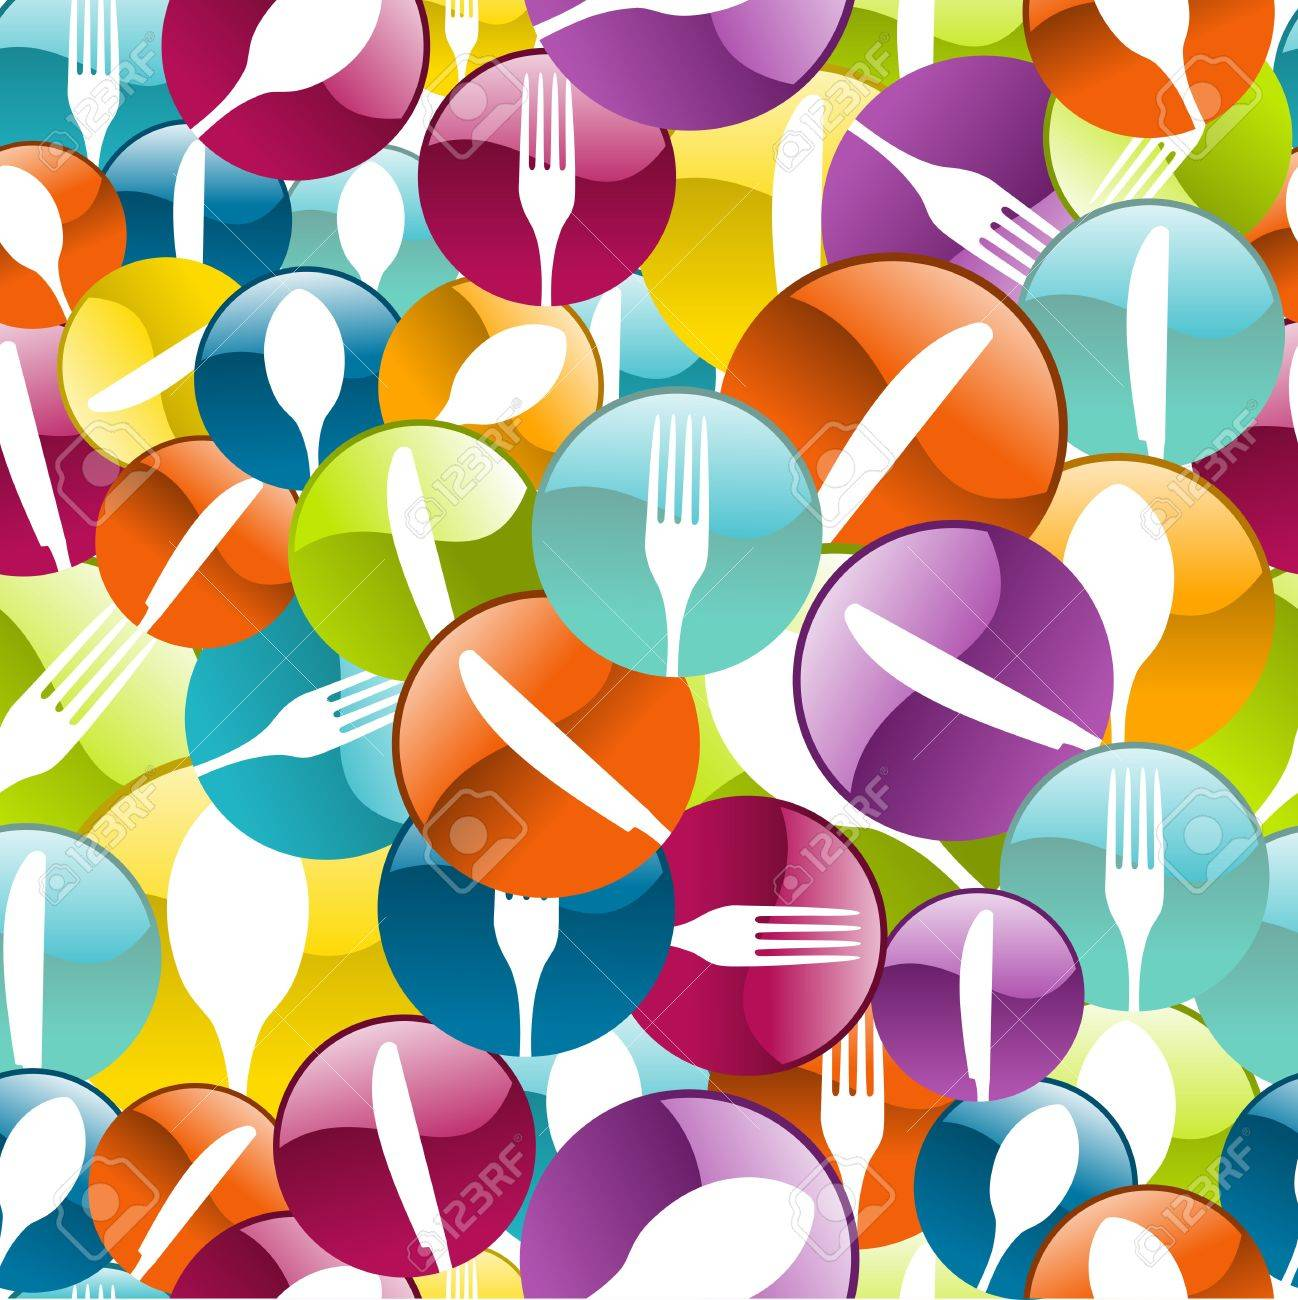 Multicolored cutlery icons pattern background. Vector illustration layered for easy manipulation and custom coloring. Stock Vector - 20602625